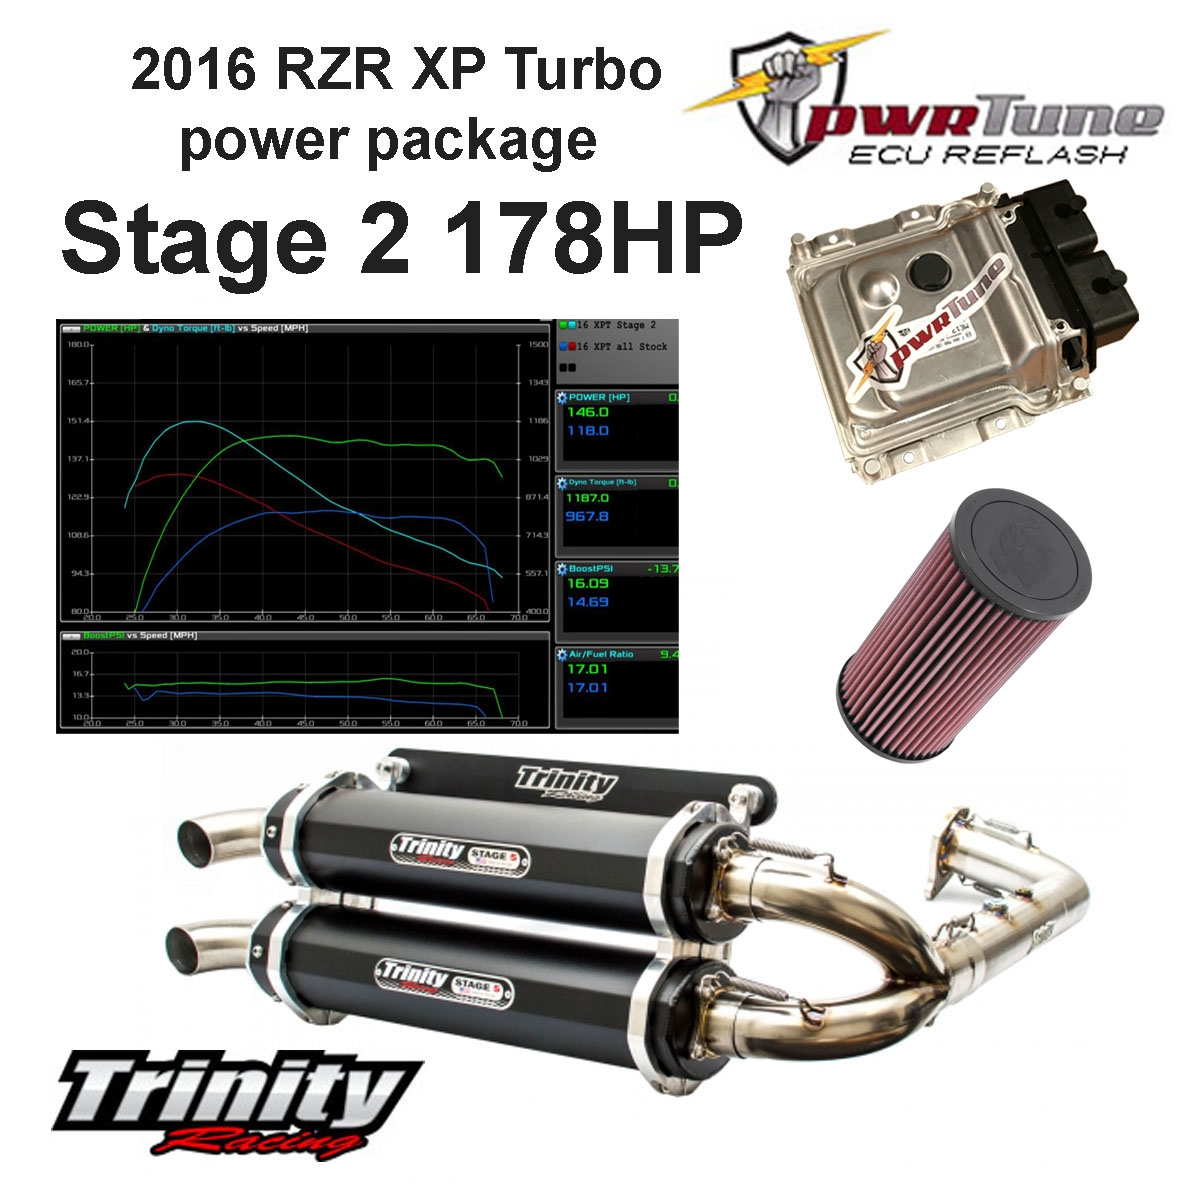 Stage 2 Performance Package XP Turbo 2016 Full Exhaust